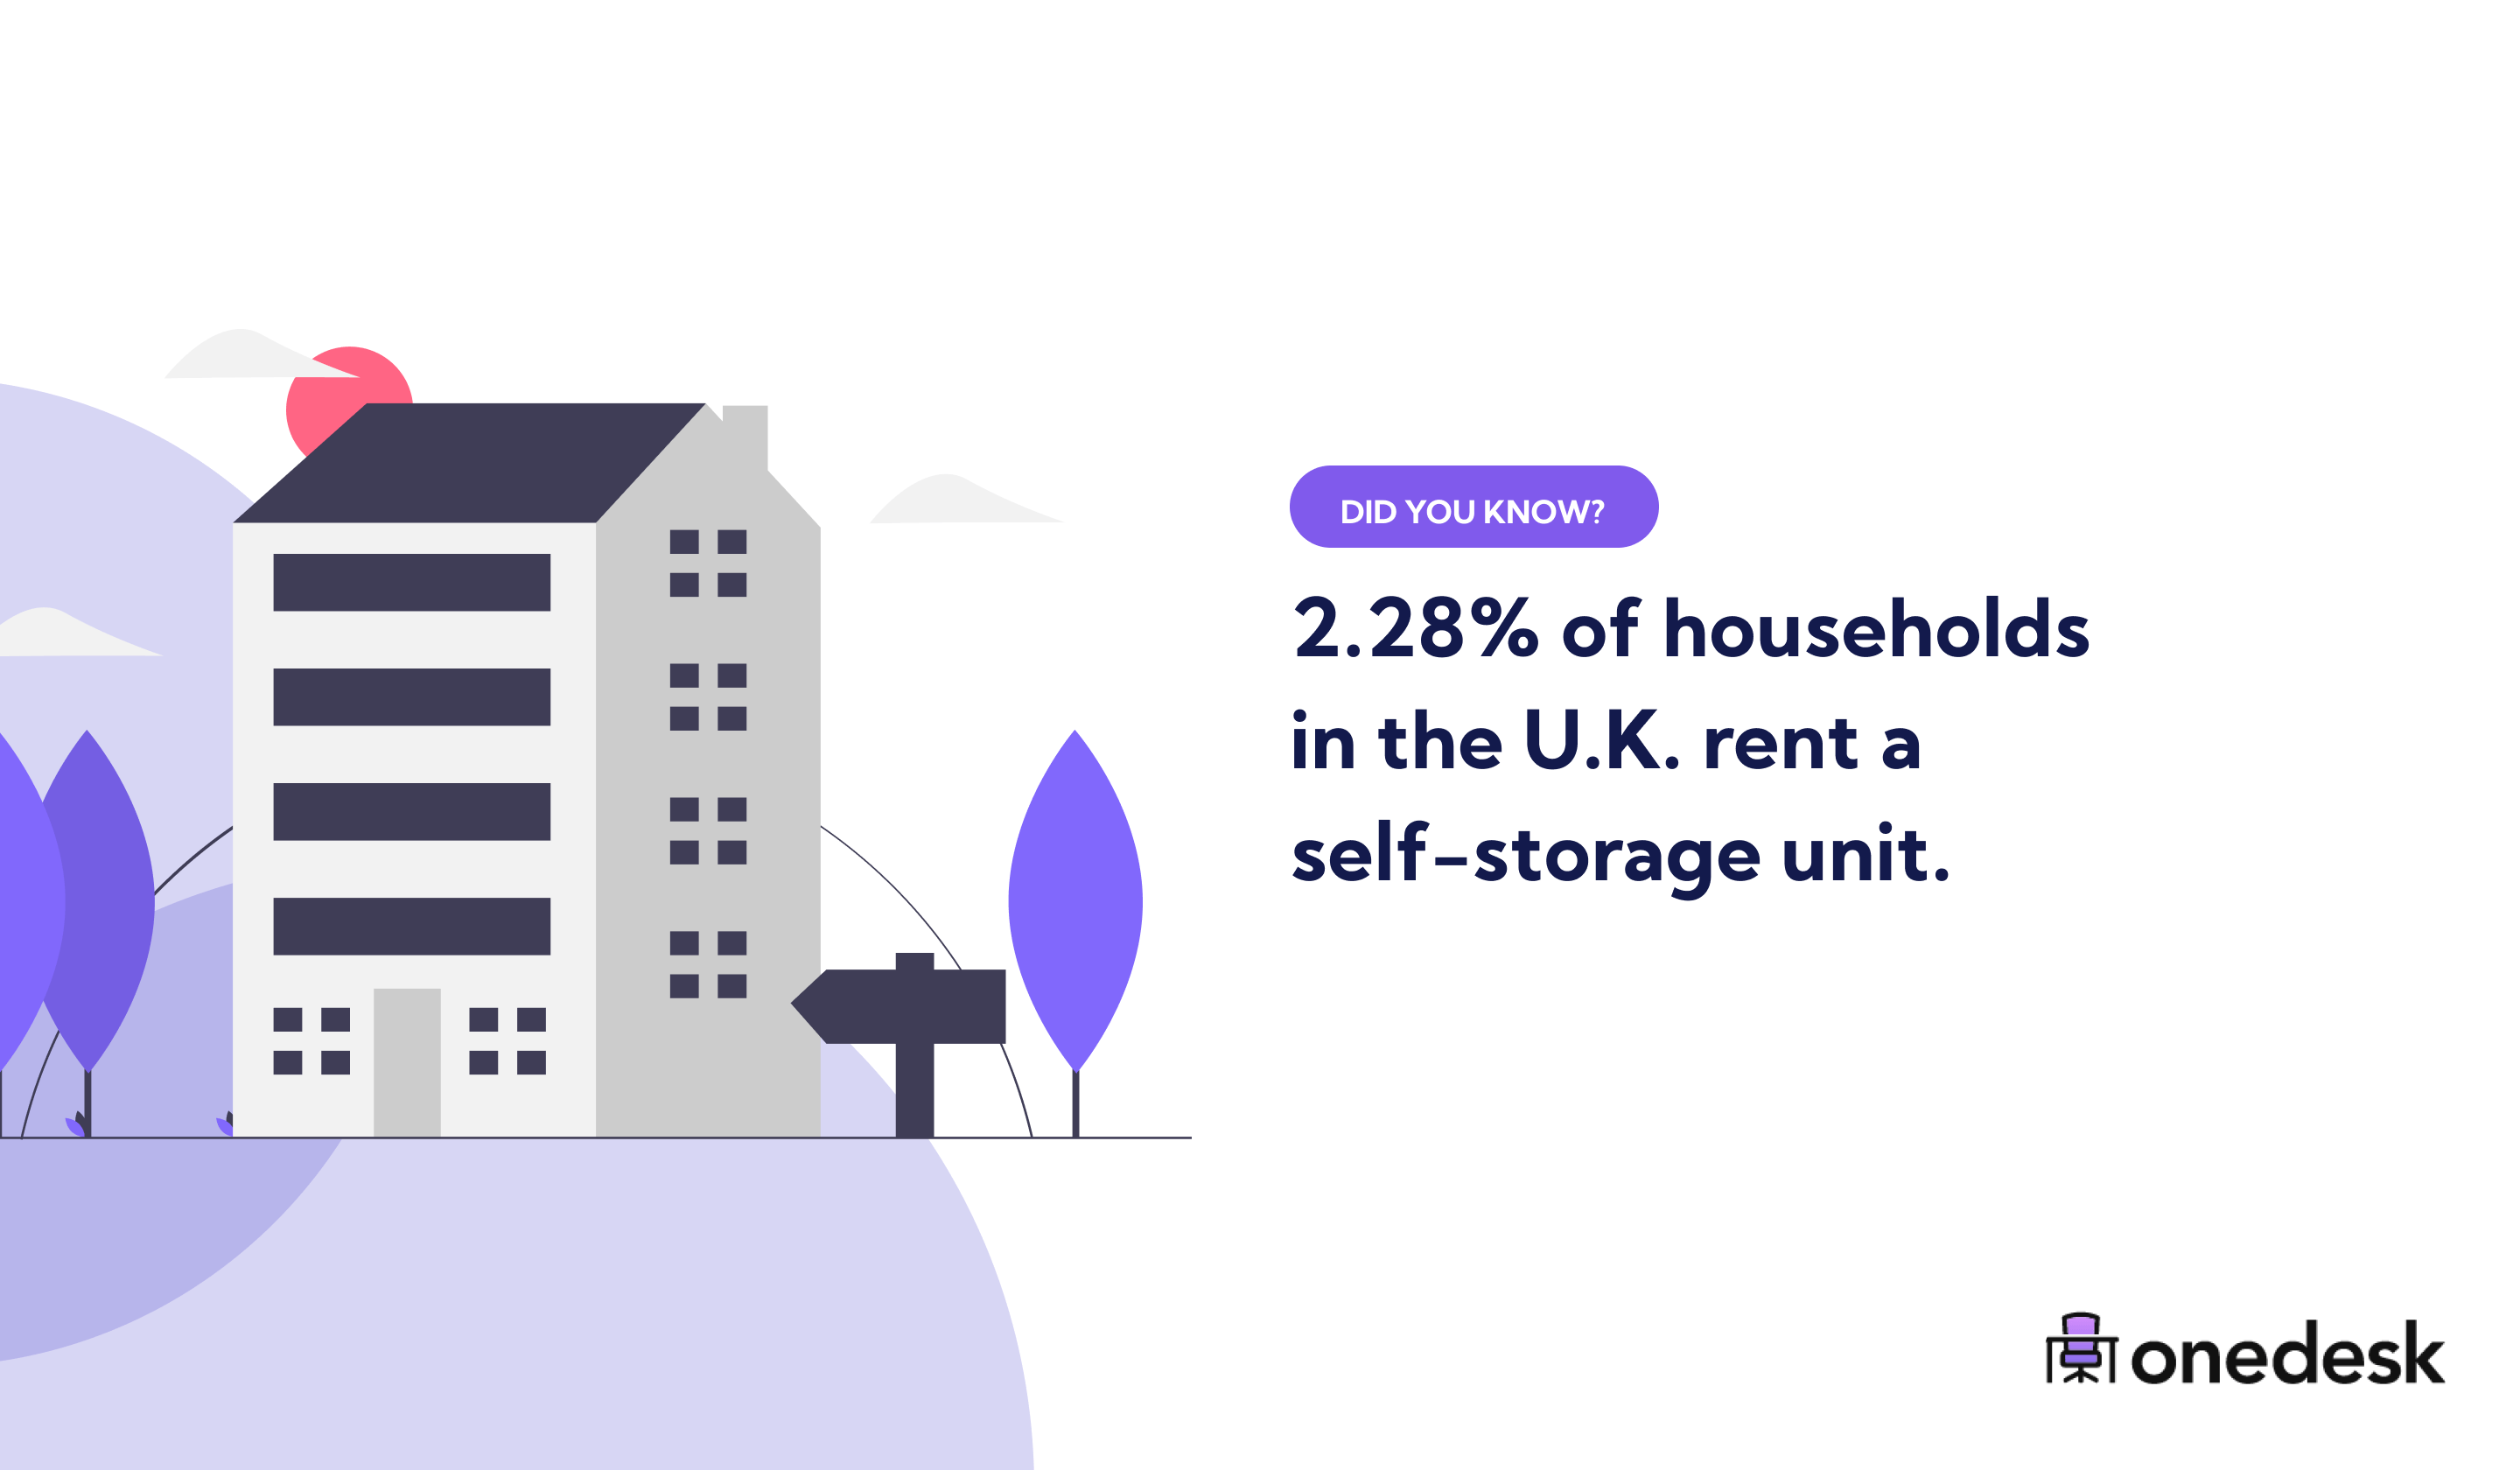 households in the UK that rent self storage units